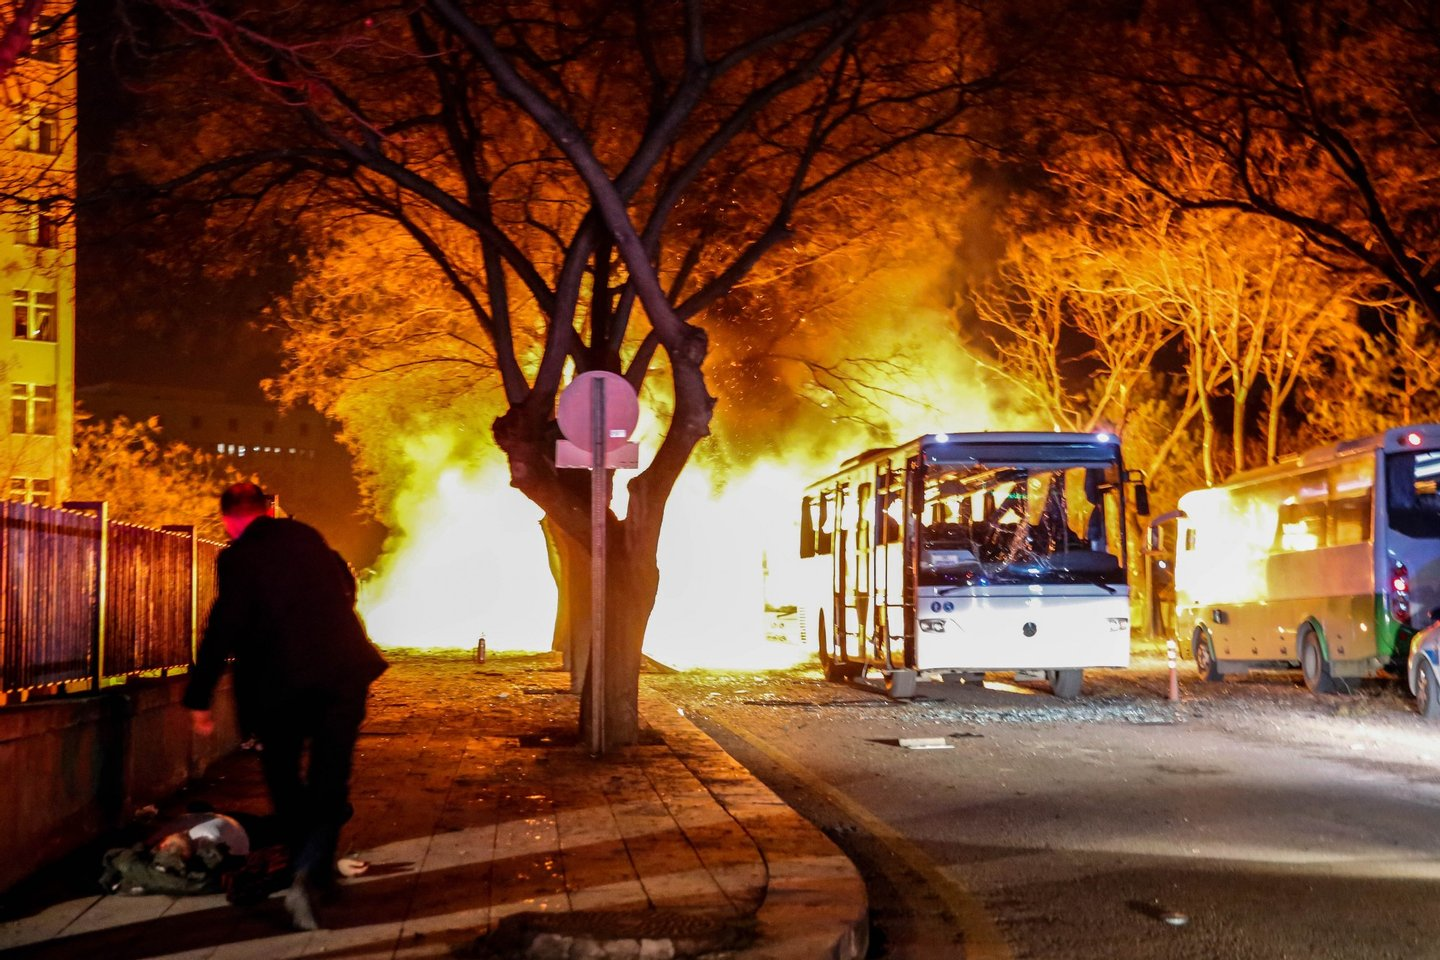 ANKARA, TURKEY - FEBRUARY 17: Turkish army service busses burn after an explosion on February 17, 2016 in Ankara, Turkey. 21 people are believed to have been killed and at least 61 are said to be wounded according to the city's governor Mehmet Kiliclar in what appeared to have been a car bomb attack on a vehicle carrying military personnel in the Turkish capital. (Photo by Defne Karadeniz/Getty Images)